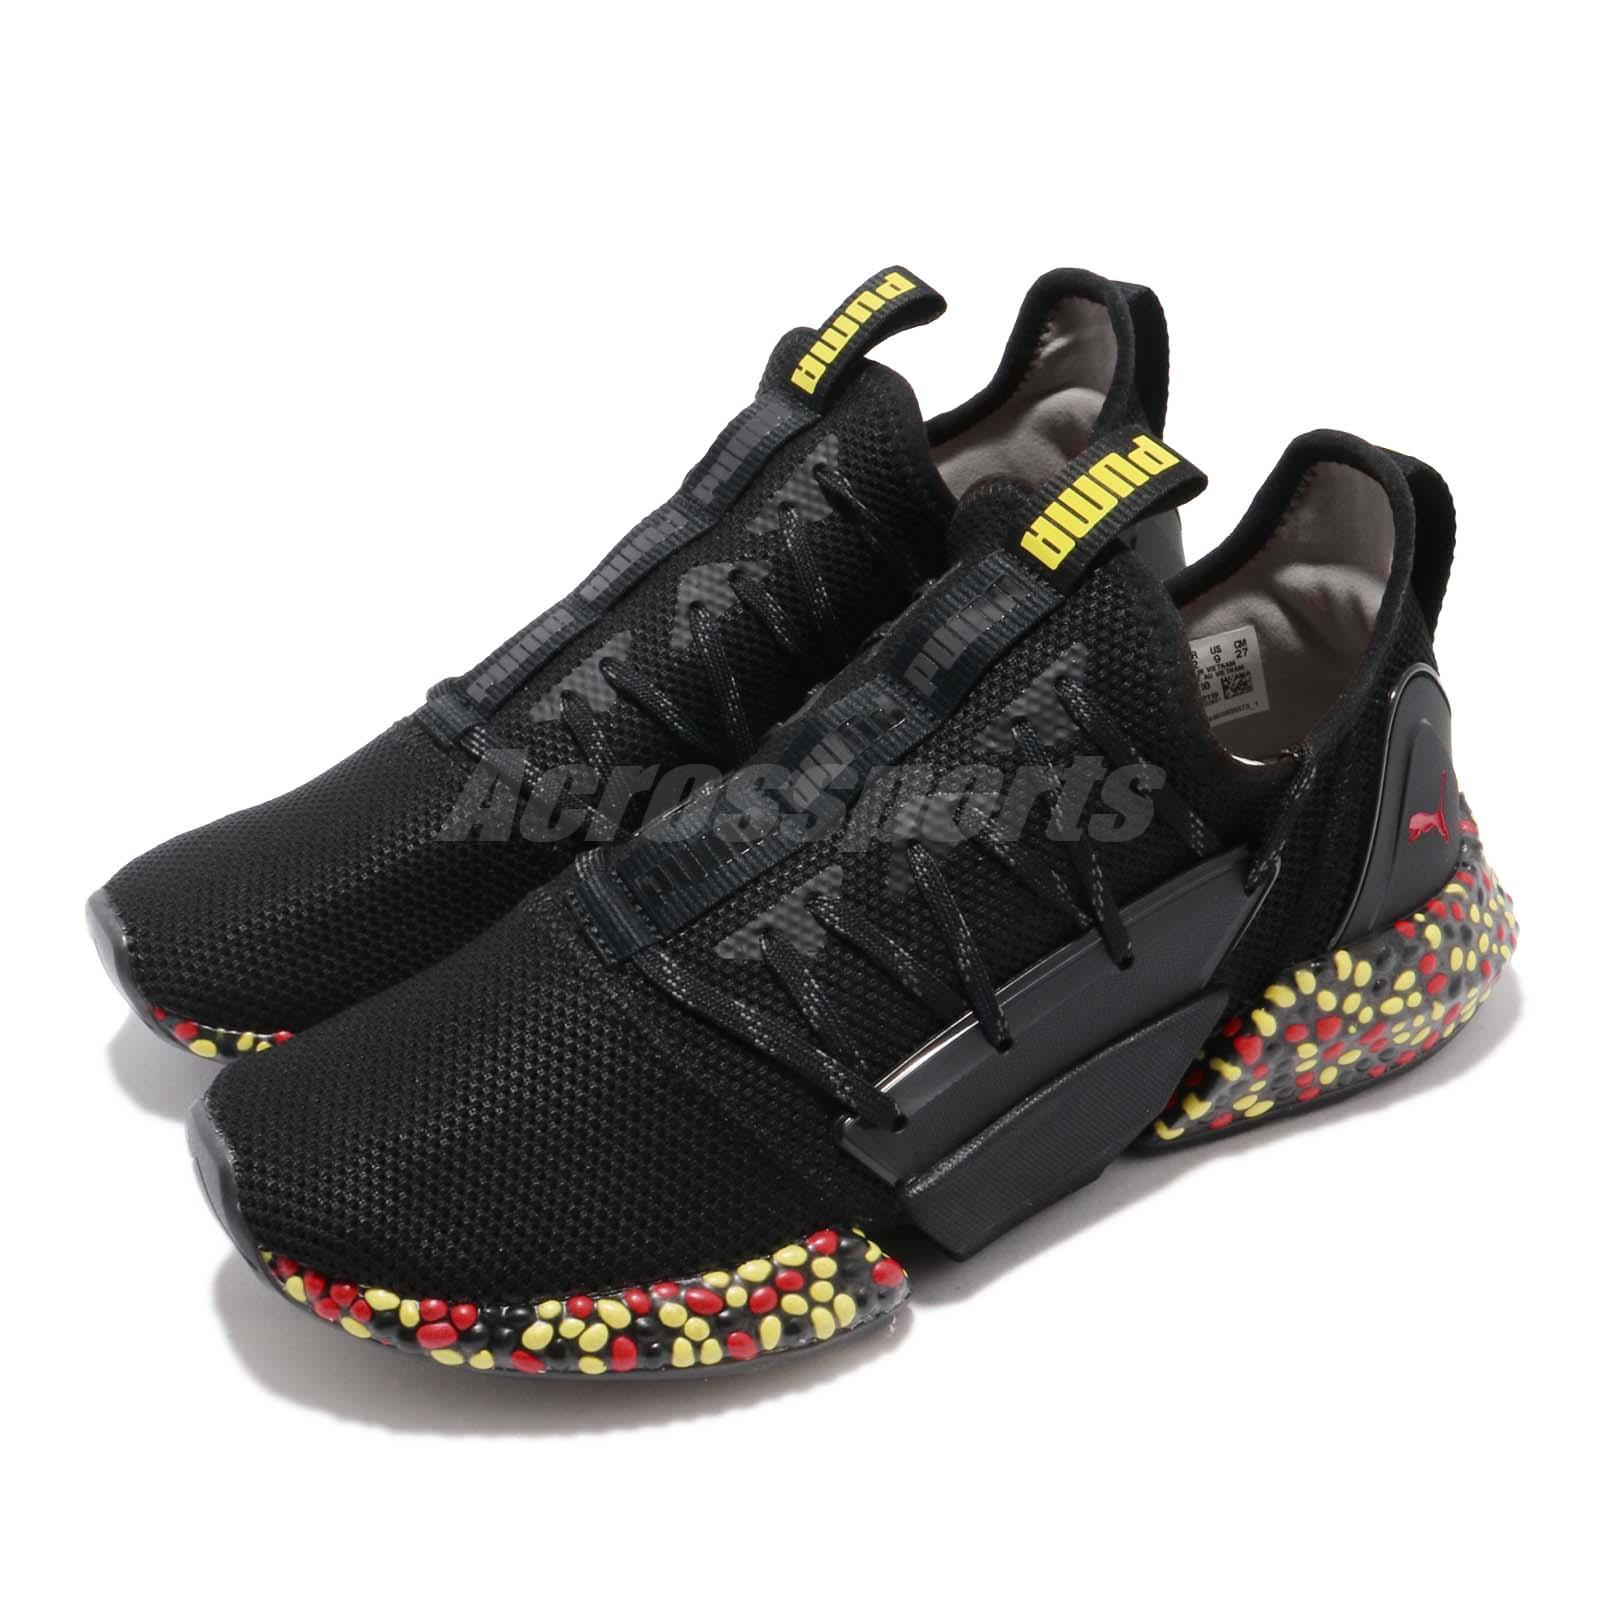 Details about Puma Hybrid Rocket Runner Black Yellow Red Men Running Shoes  Sneakers 191592-10 94ef45b50